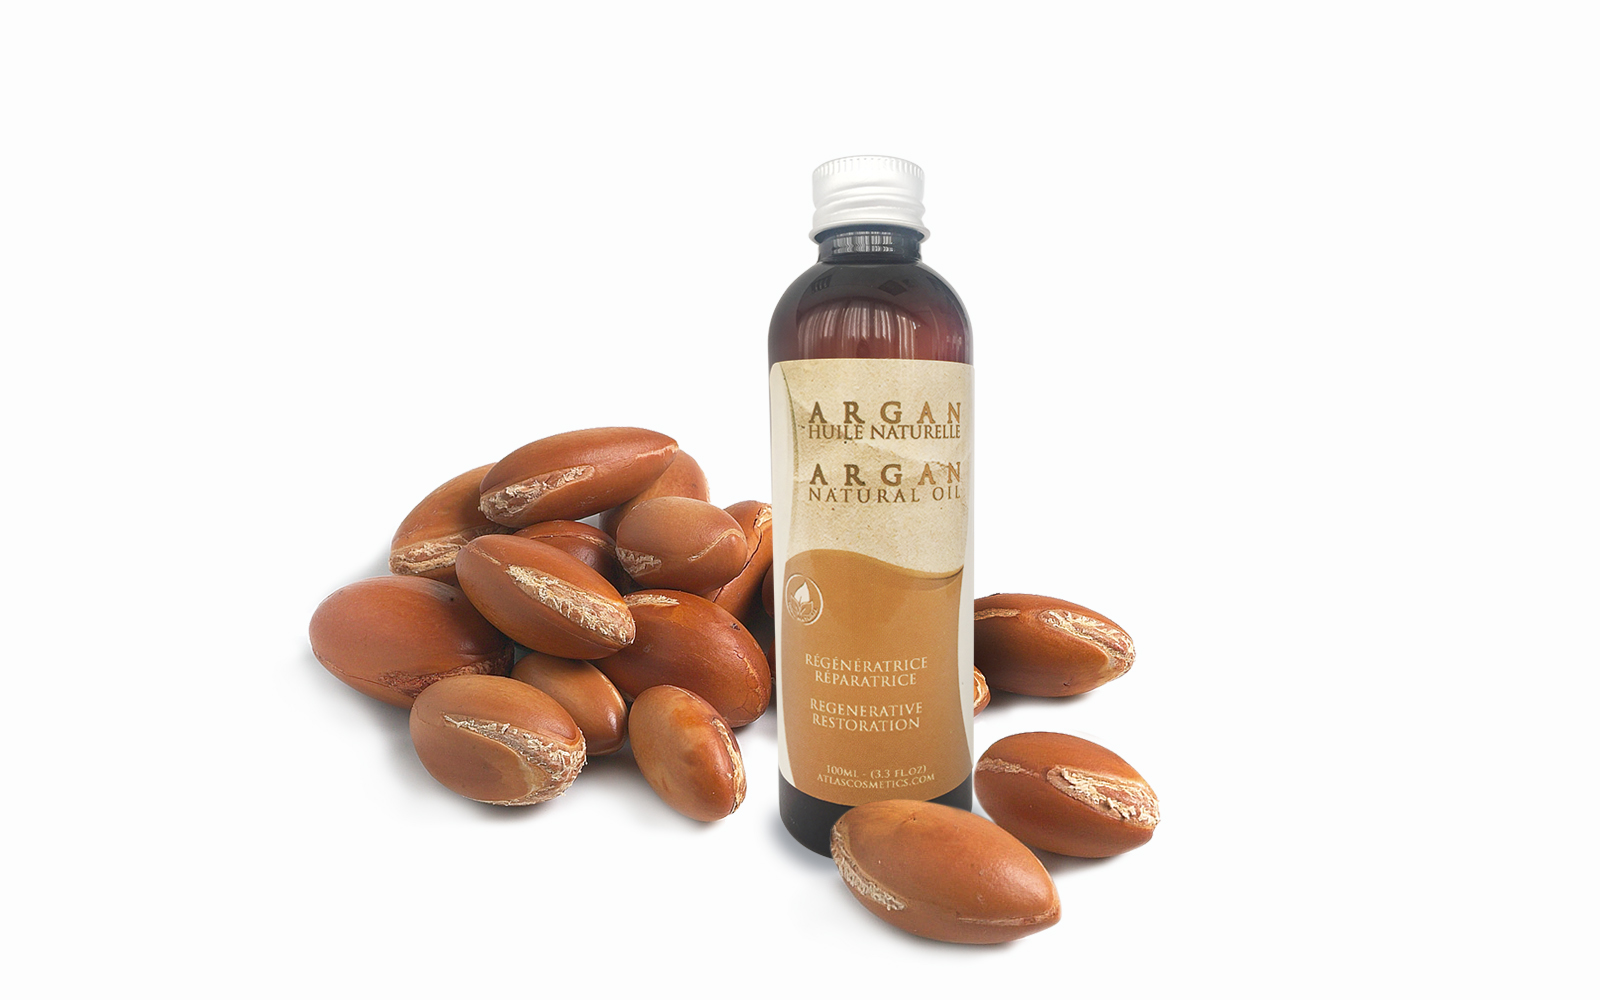 argan natural oil by Azoor